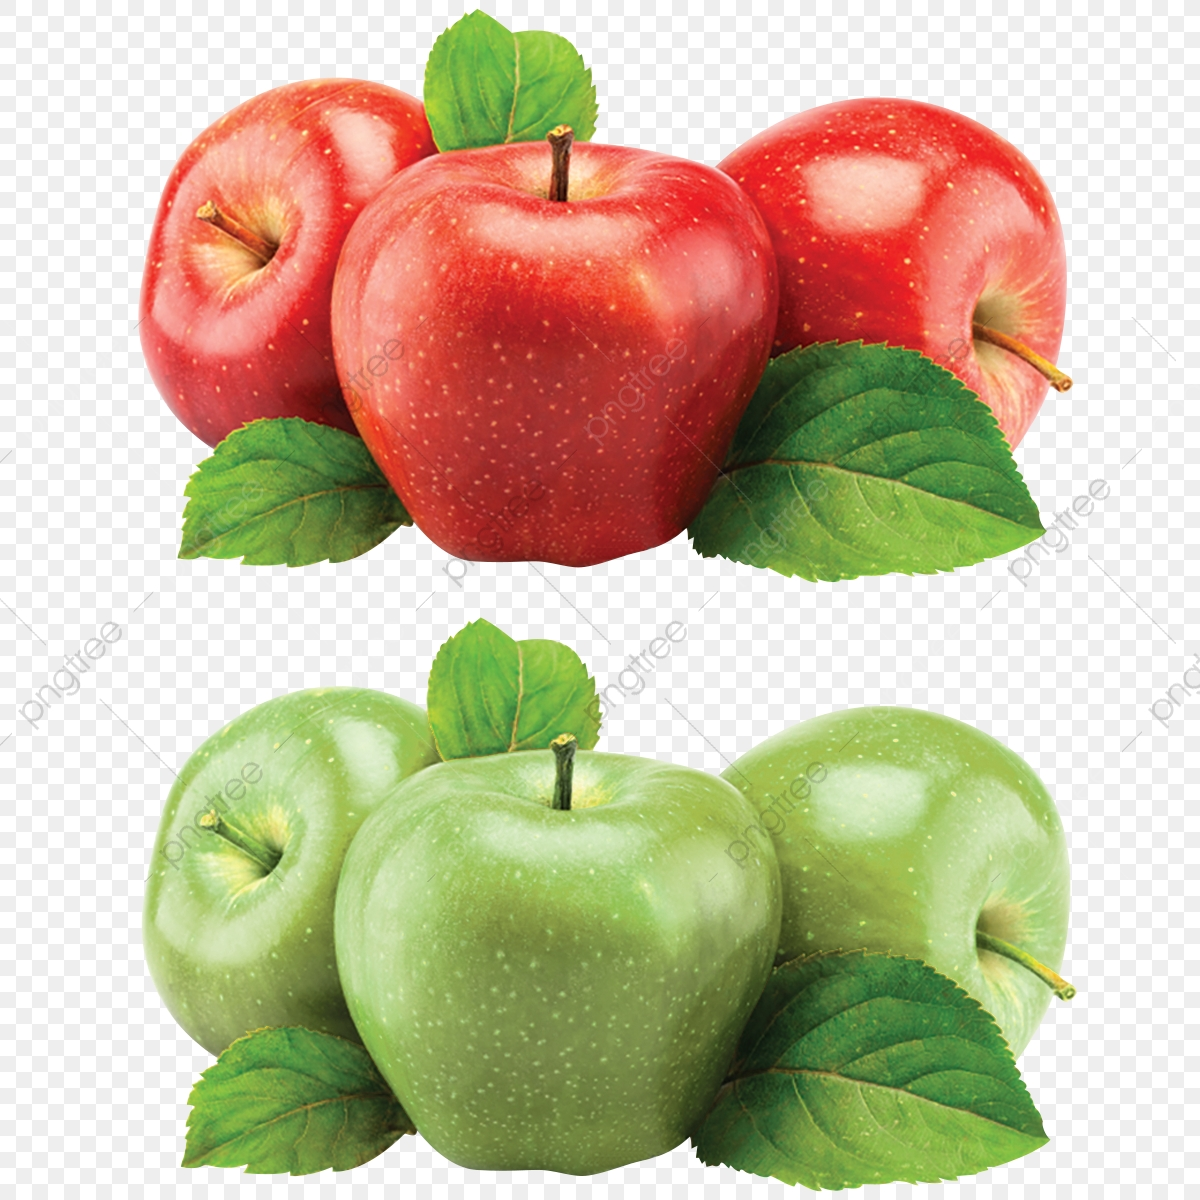 Red And Green Apples Free Psd And Png, Red Apples Png, Green Apples.